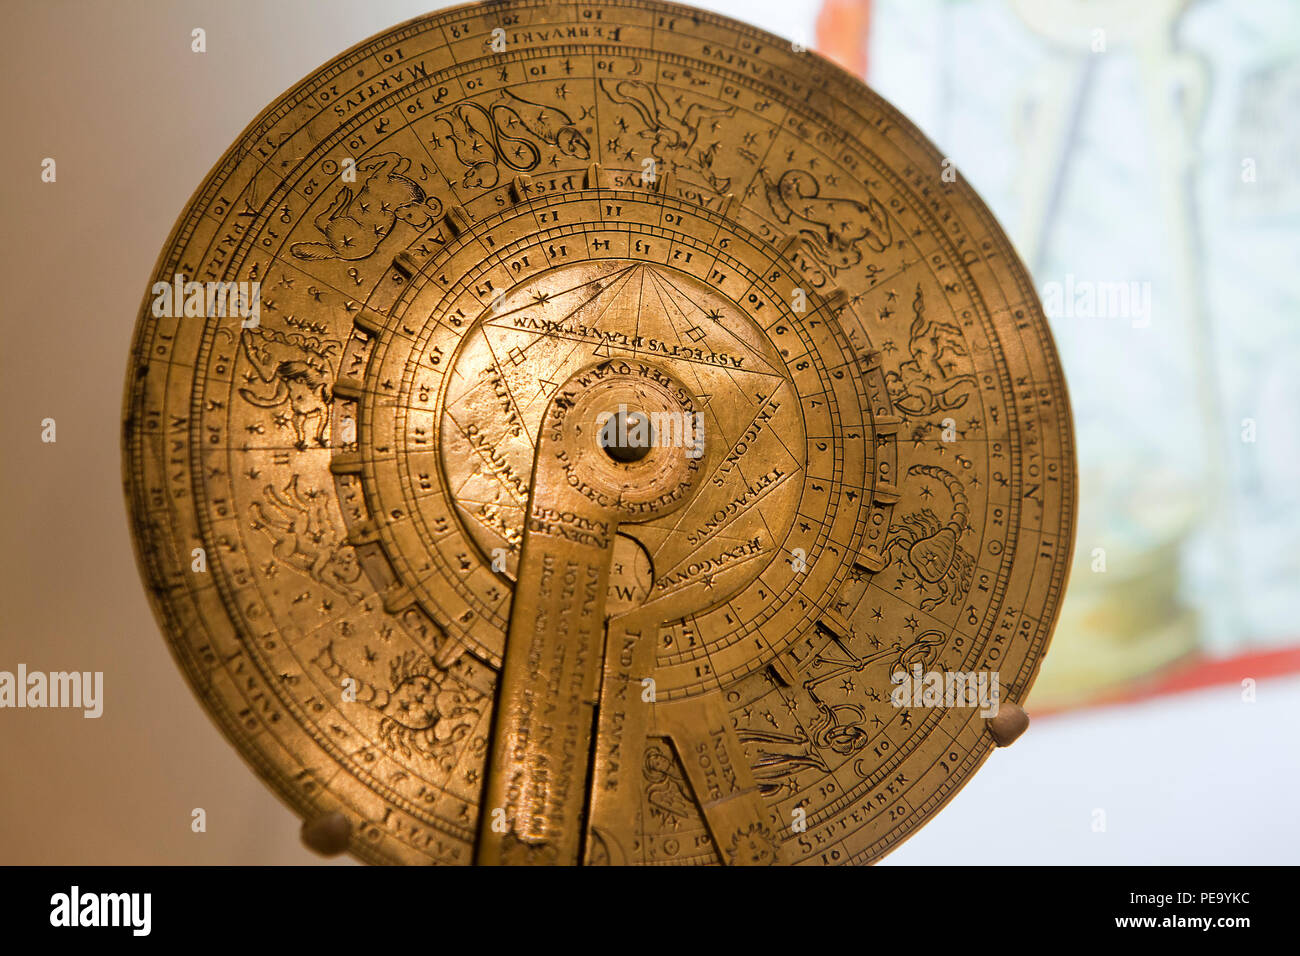 Nocturnal and sundial, circa 16th century - Stock Image